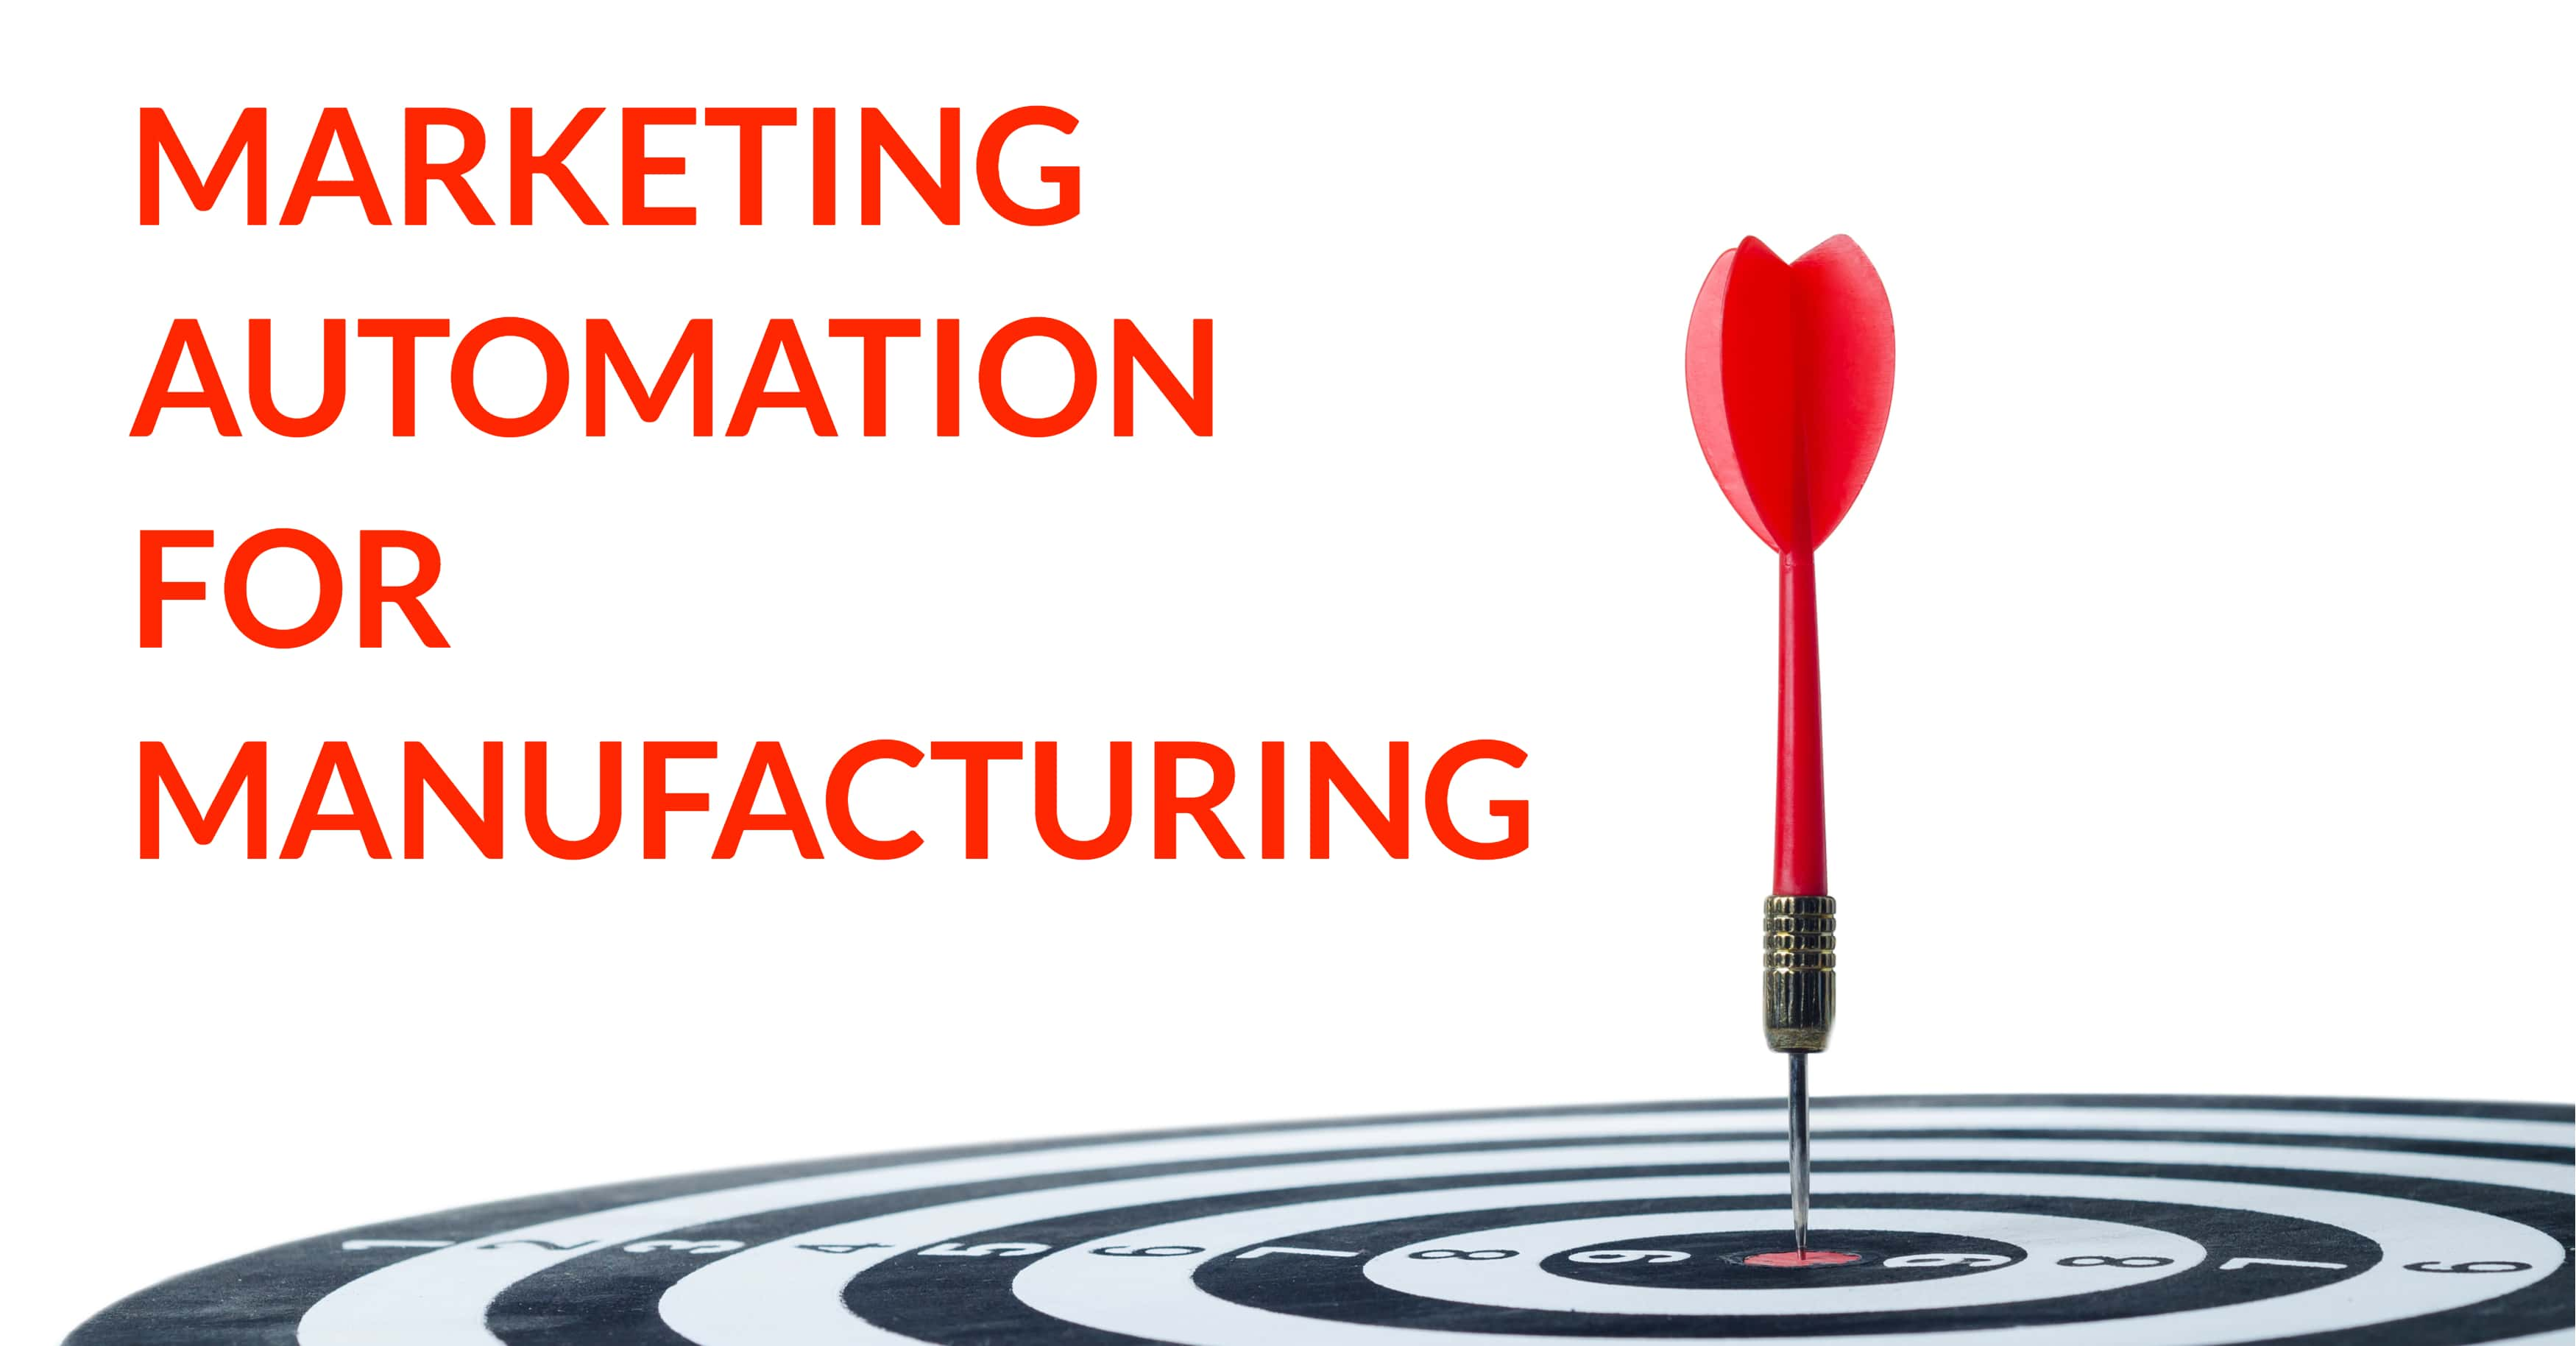 How Can Manufacturers Improve Customer Journeys?